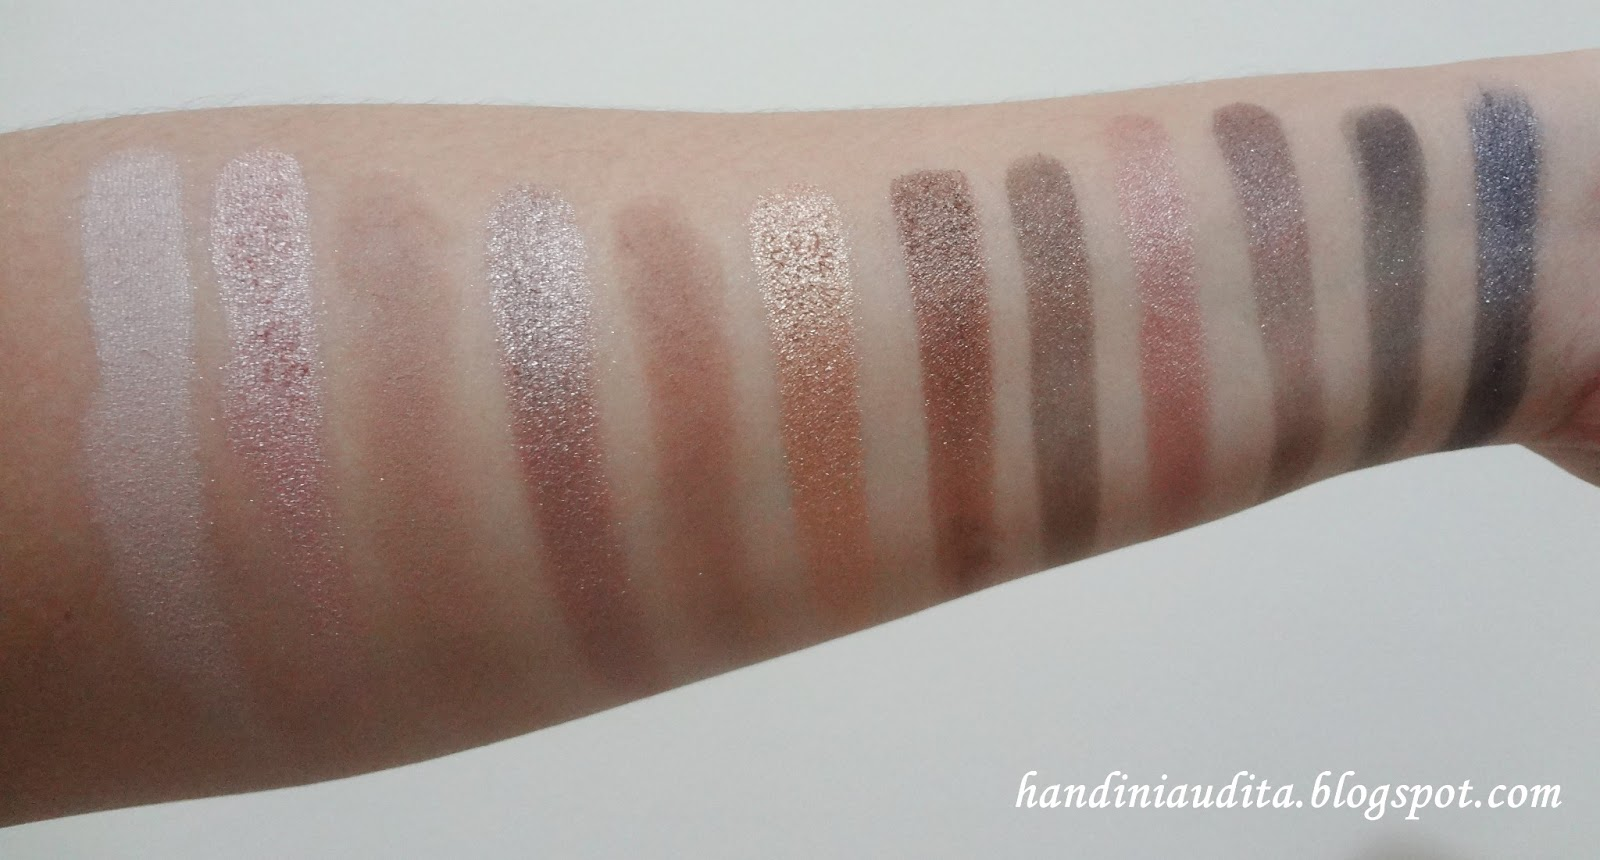 Naked Smoky Eyeshadow Palette by Urban Decay #20